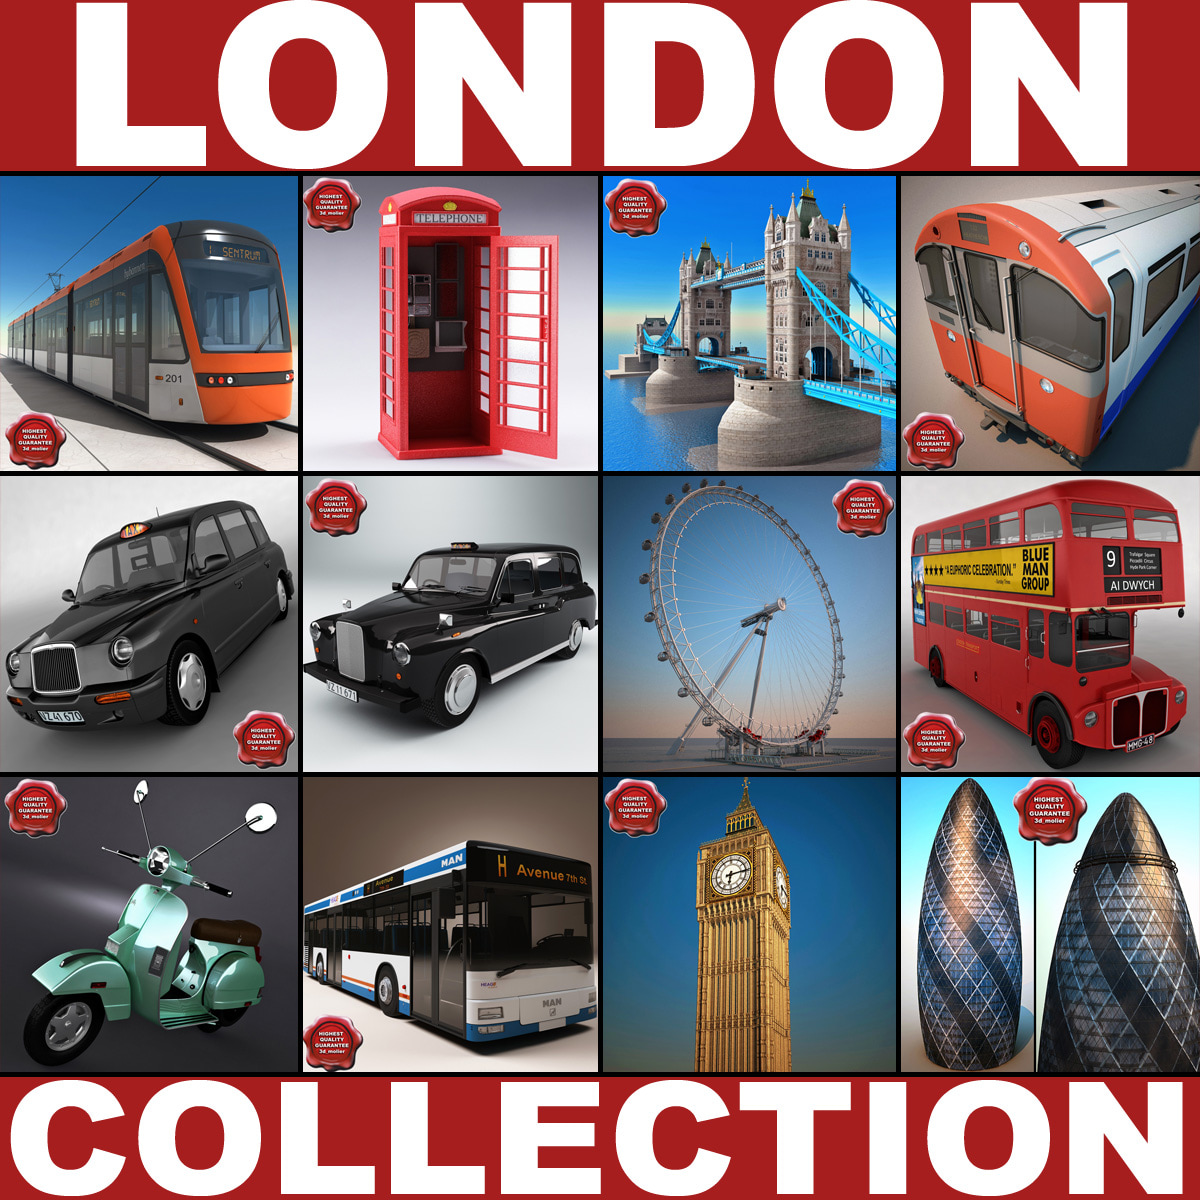 London_Big_Collection_V2_000.jpg